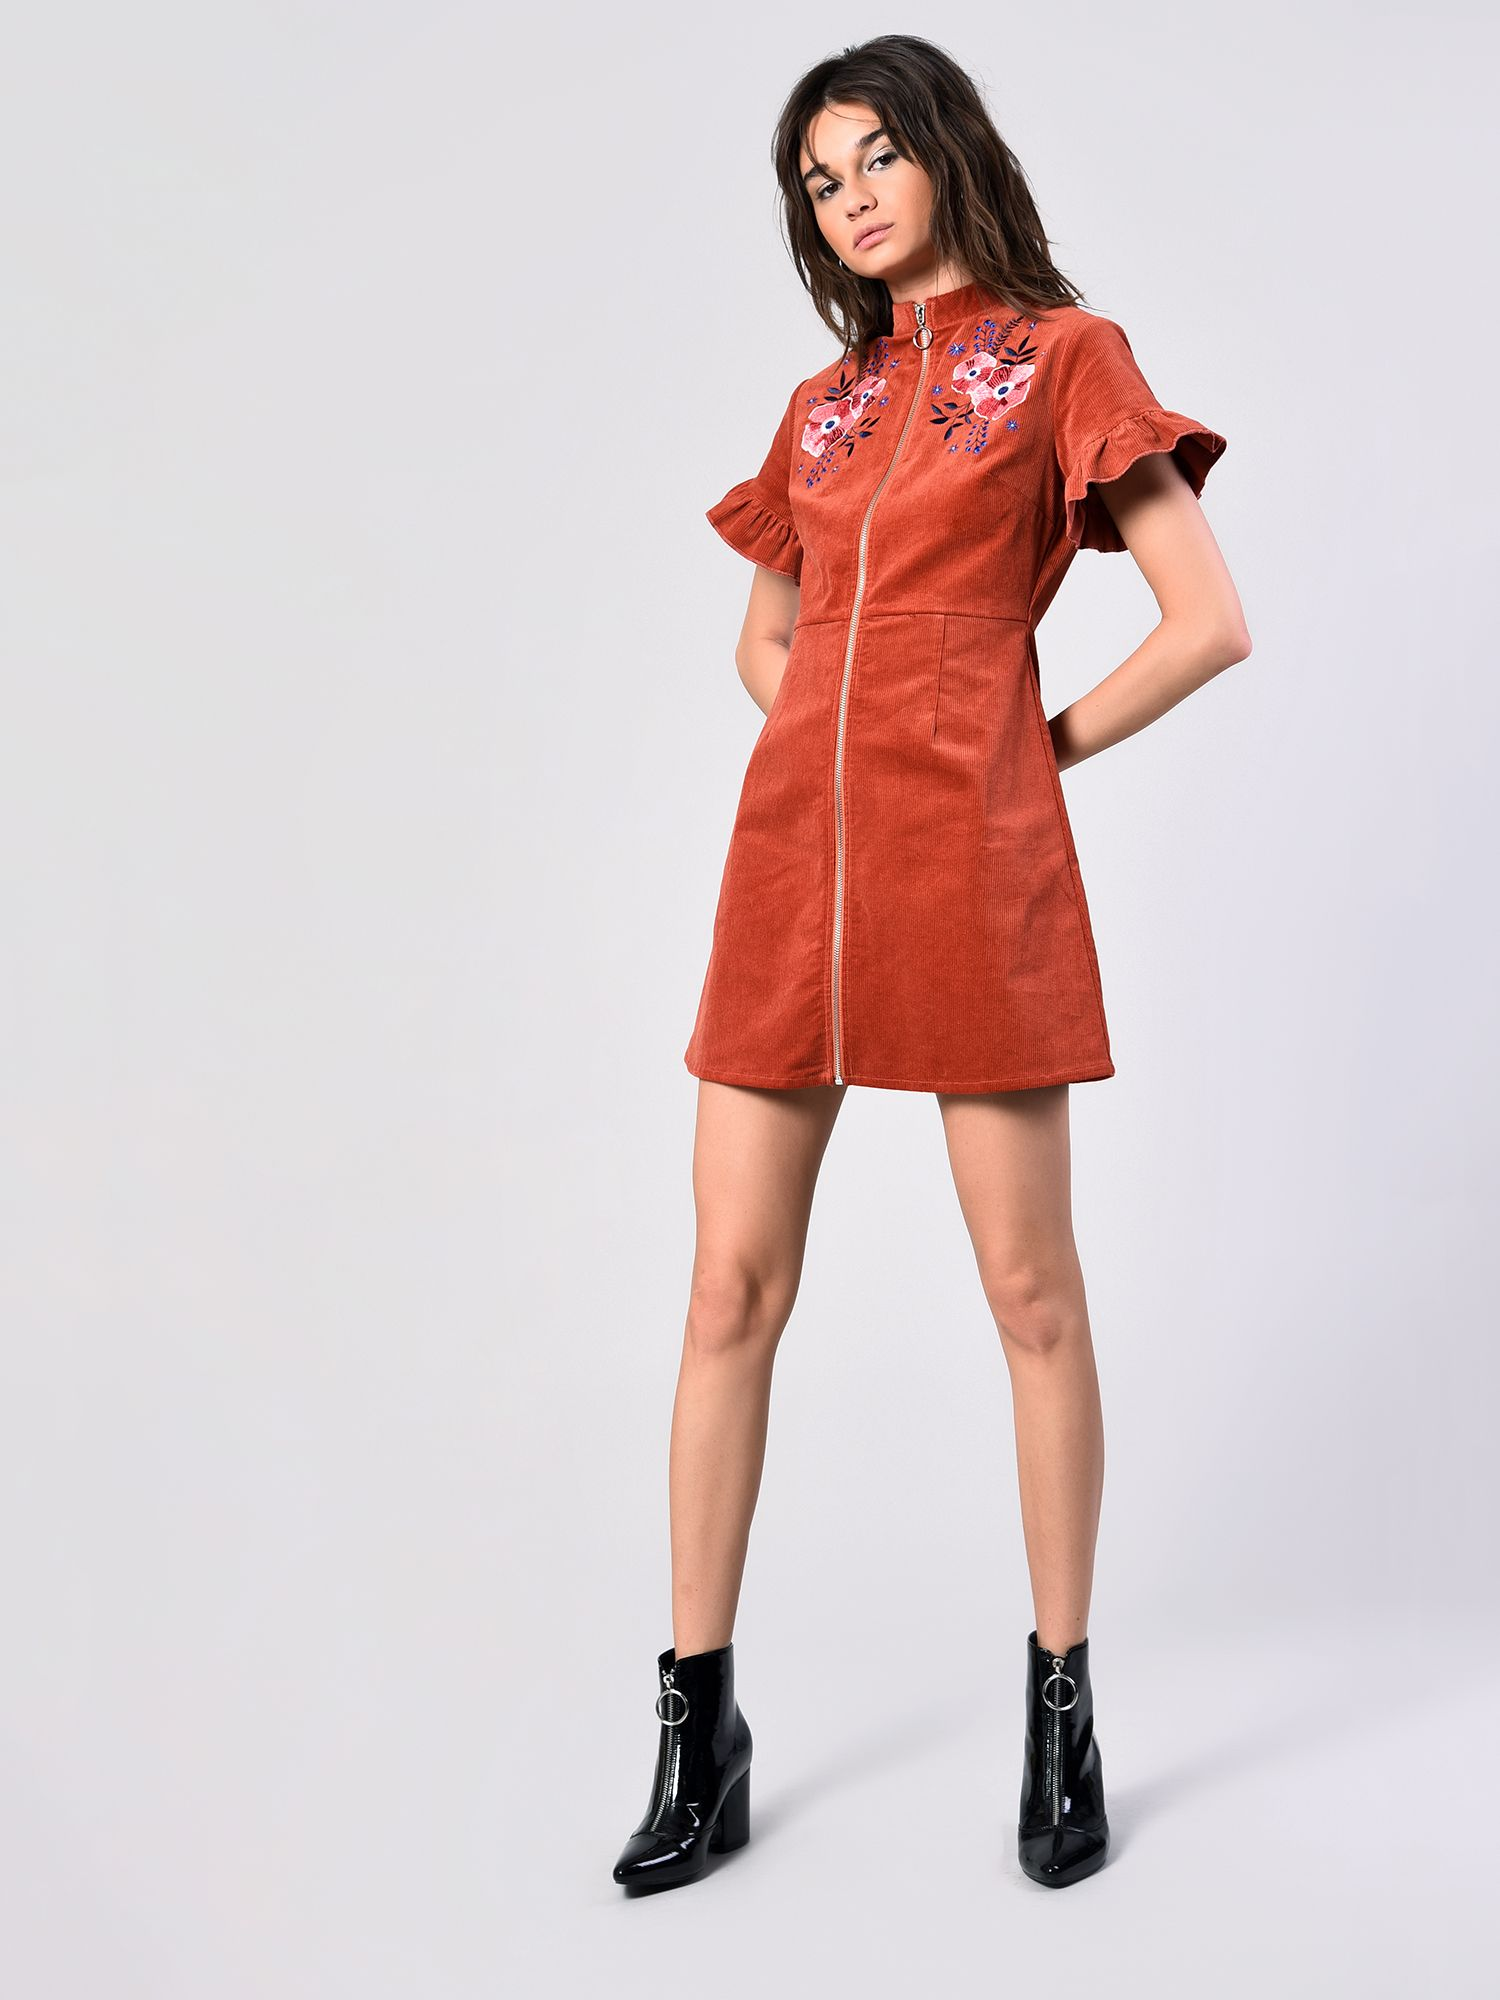 5773d261a2b Rust Corduroy Embroidered Frill Sleeve Dress- £45.00